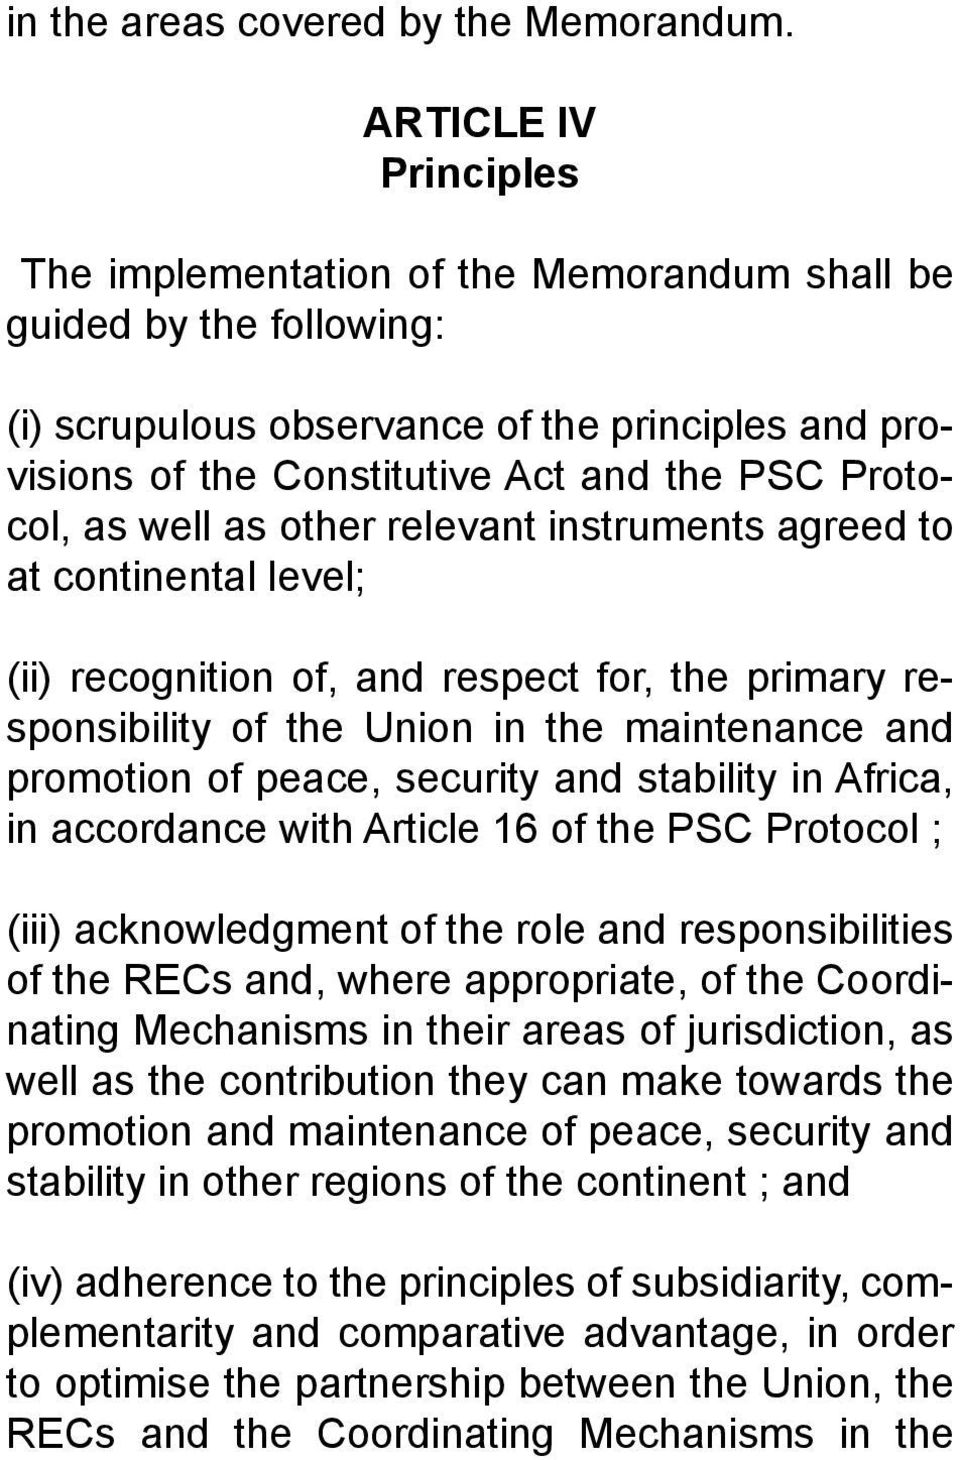 as well as other relevant instruments agreed to at continental level; (ii) recognition of, and respect for, the primary responsibility of the Union in the maintenance and promotion of peace, security